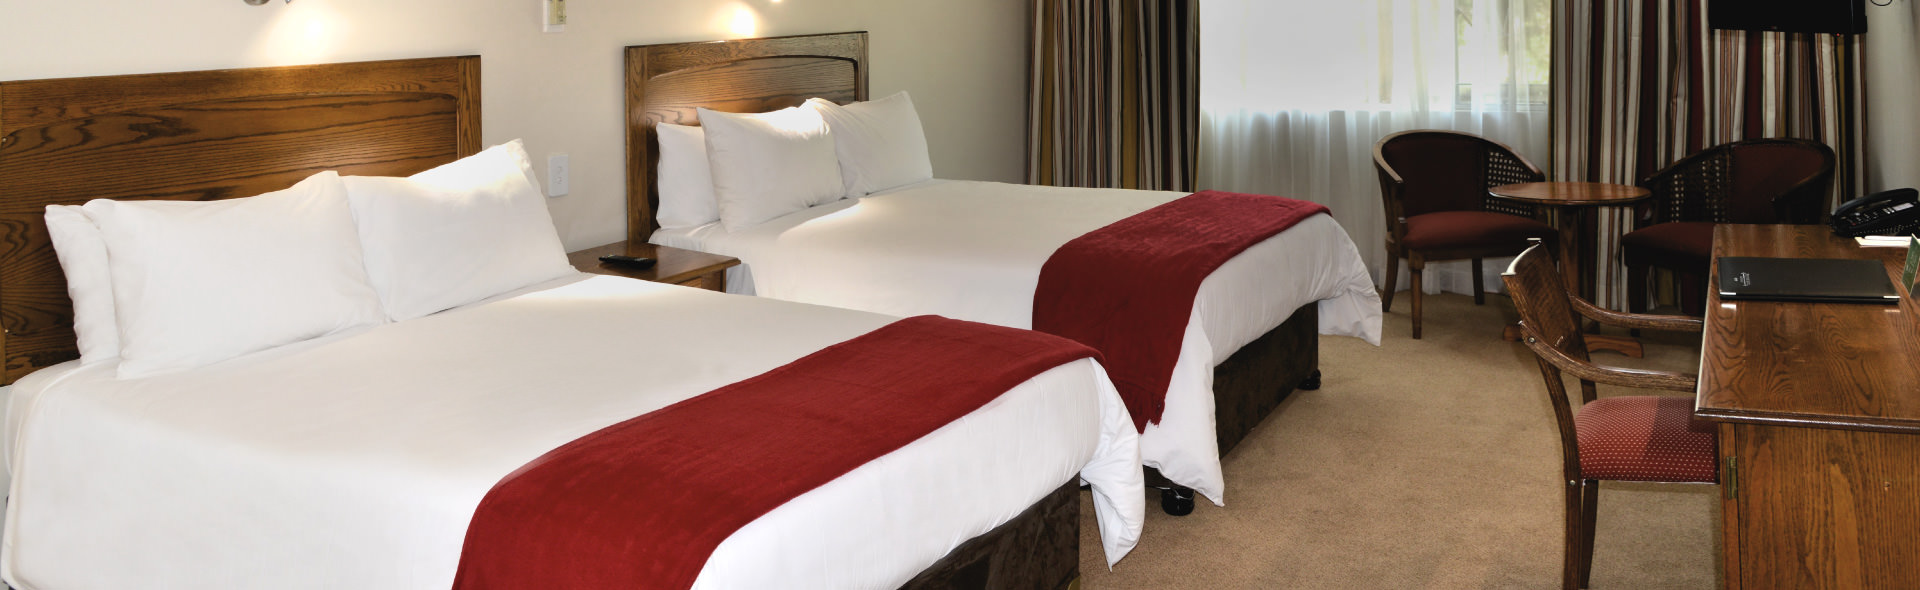 Park Hotel two double in room beds for Deluxe Family Sutie